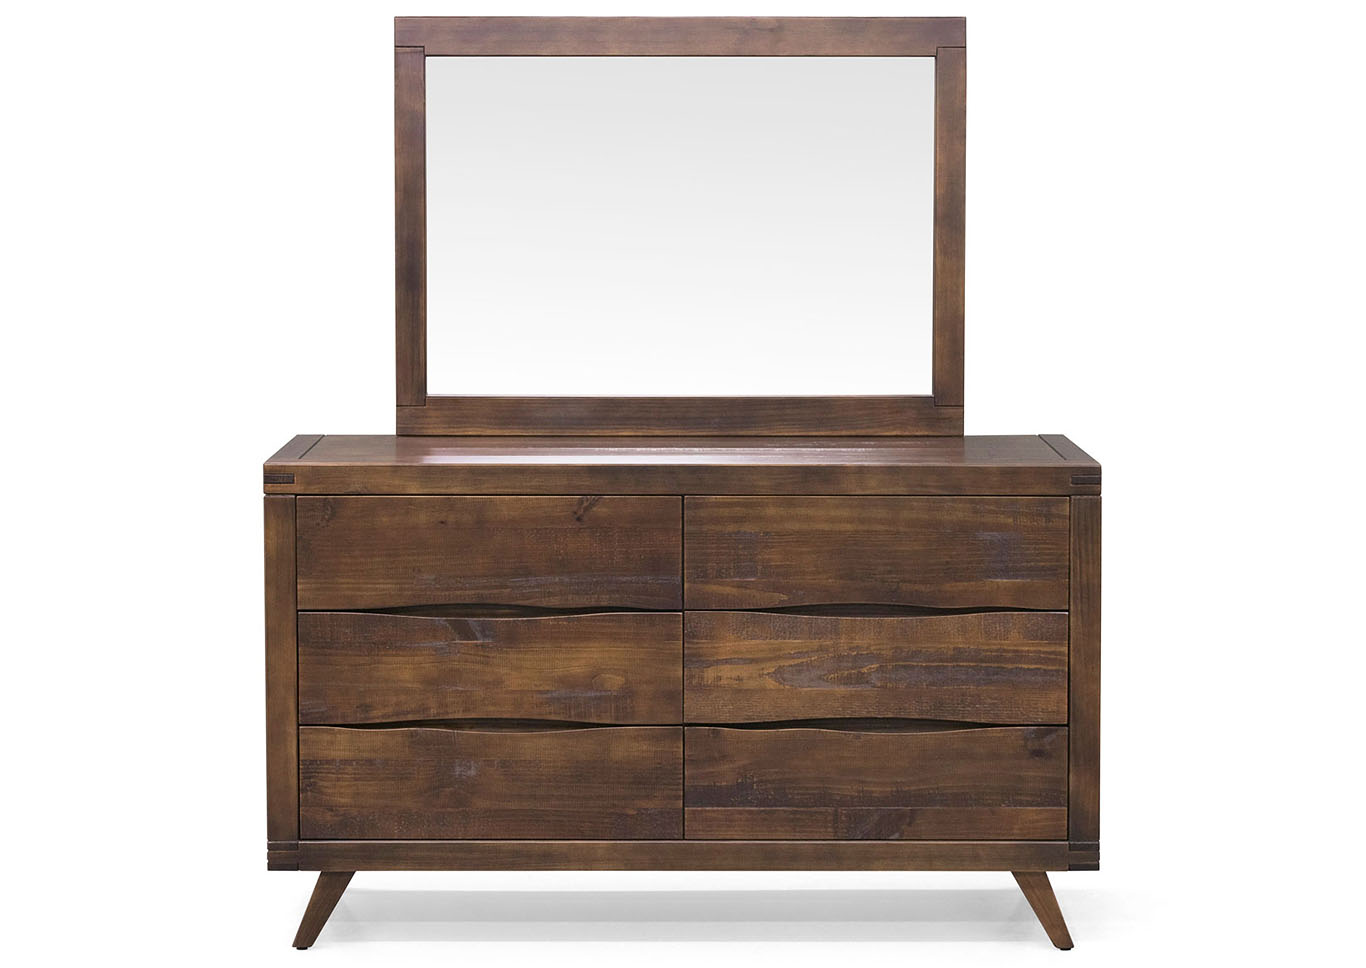 Pasco Brown Dresser & Mirror,Steve Silver